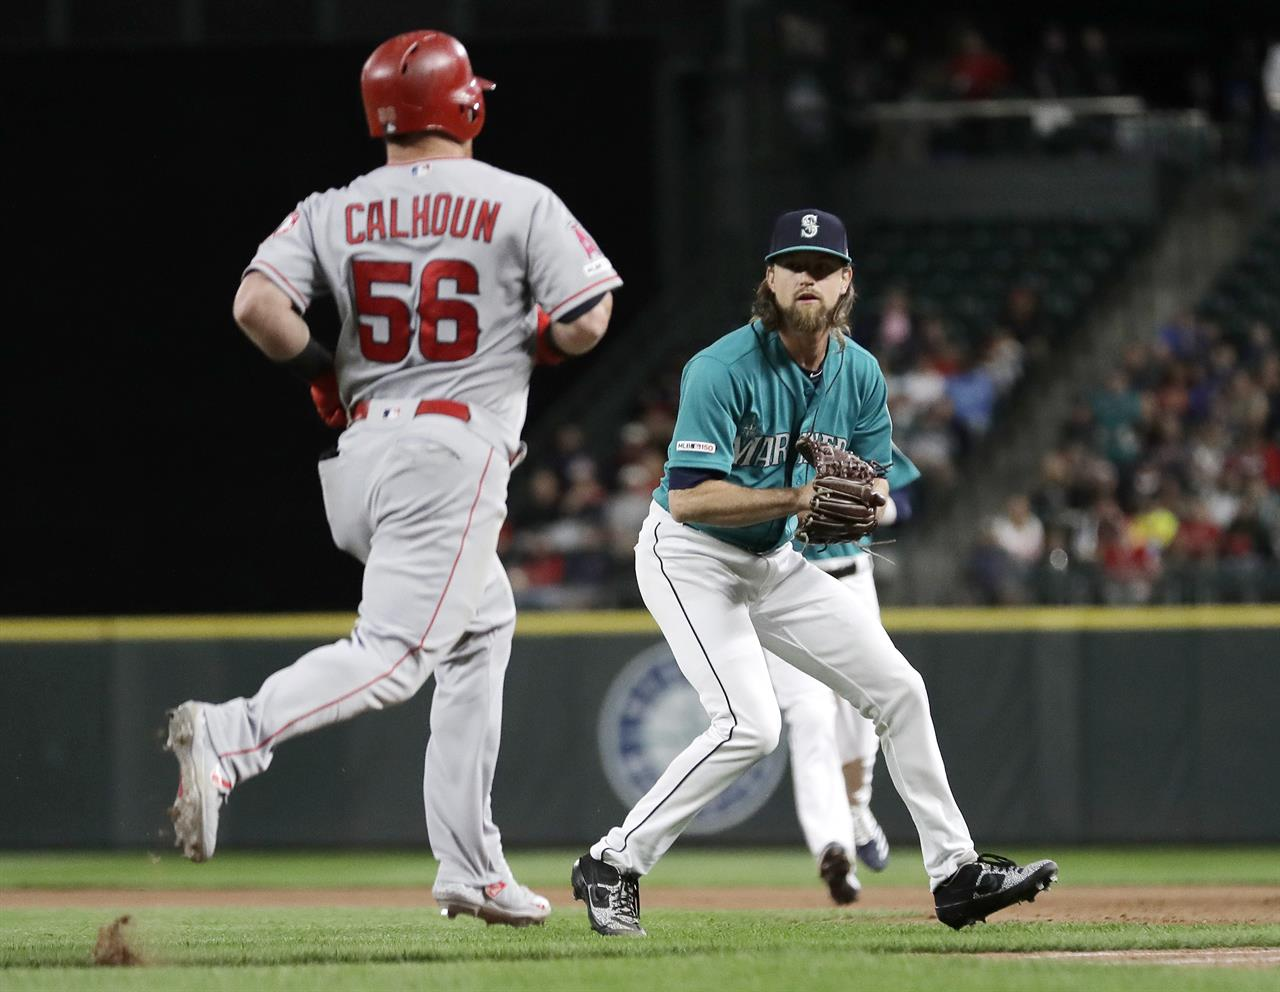 Mariners' Leake lose perfect game try in 9th, blanks Angels | AM 970